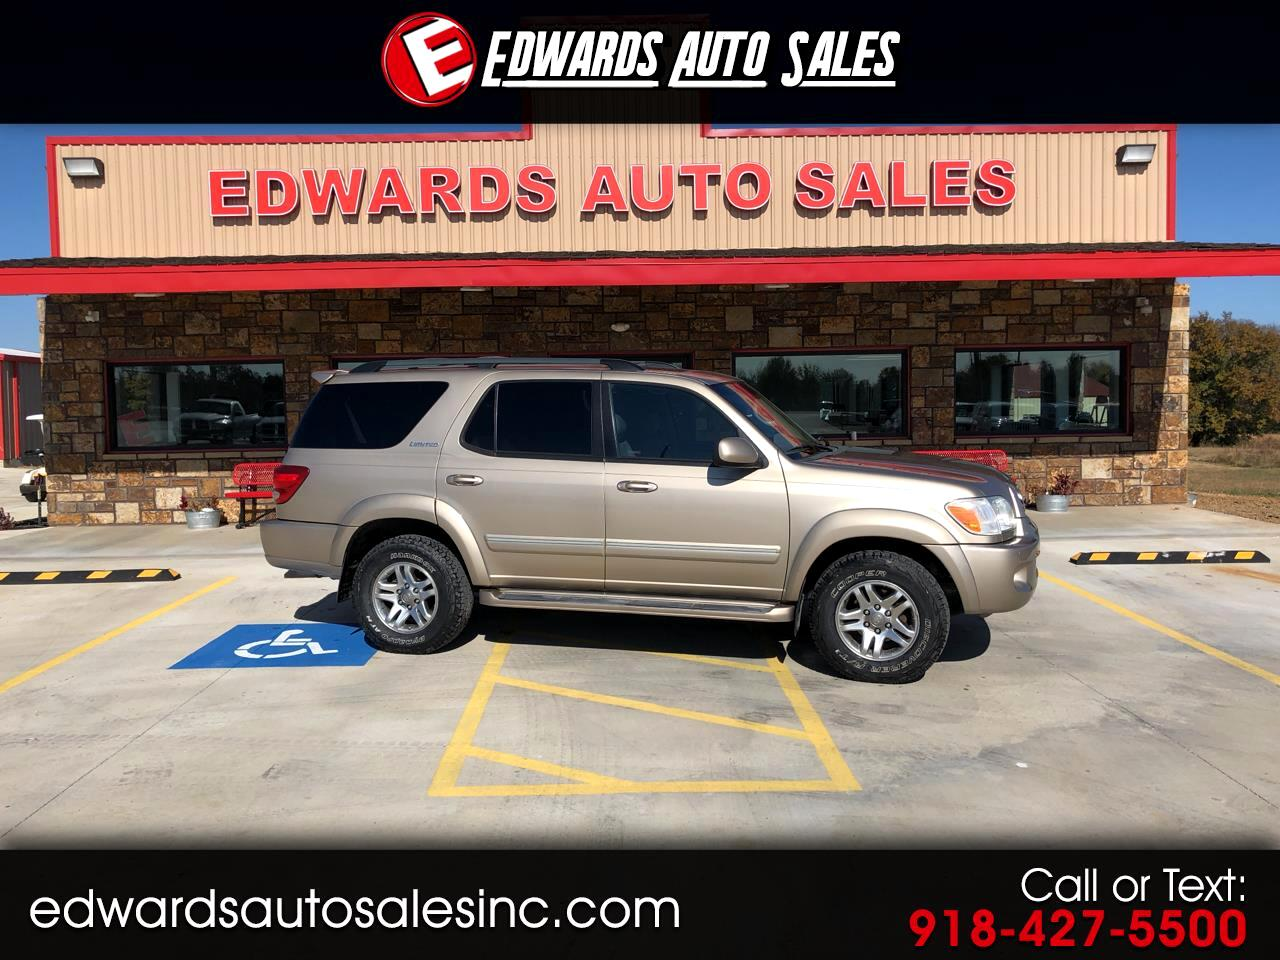 2006 Toyota Sequoia 4dr Limited 4WD (Natl)